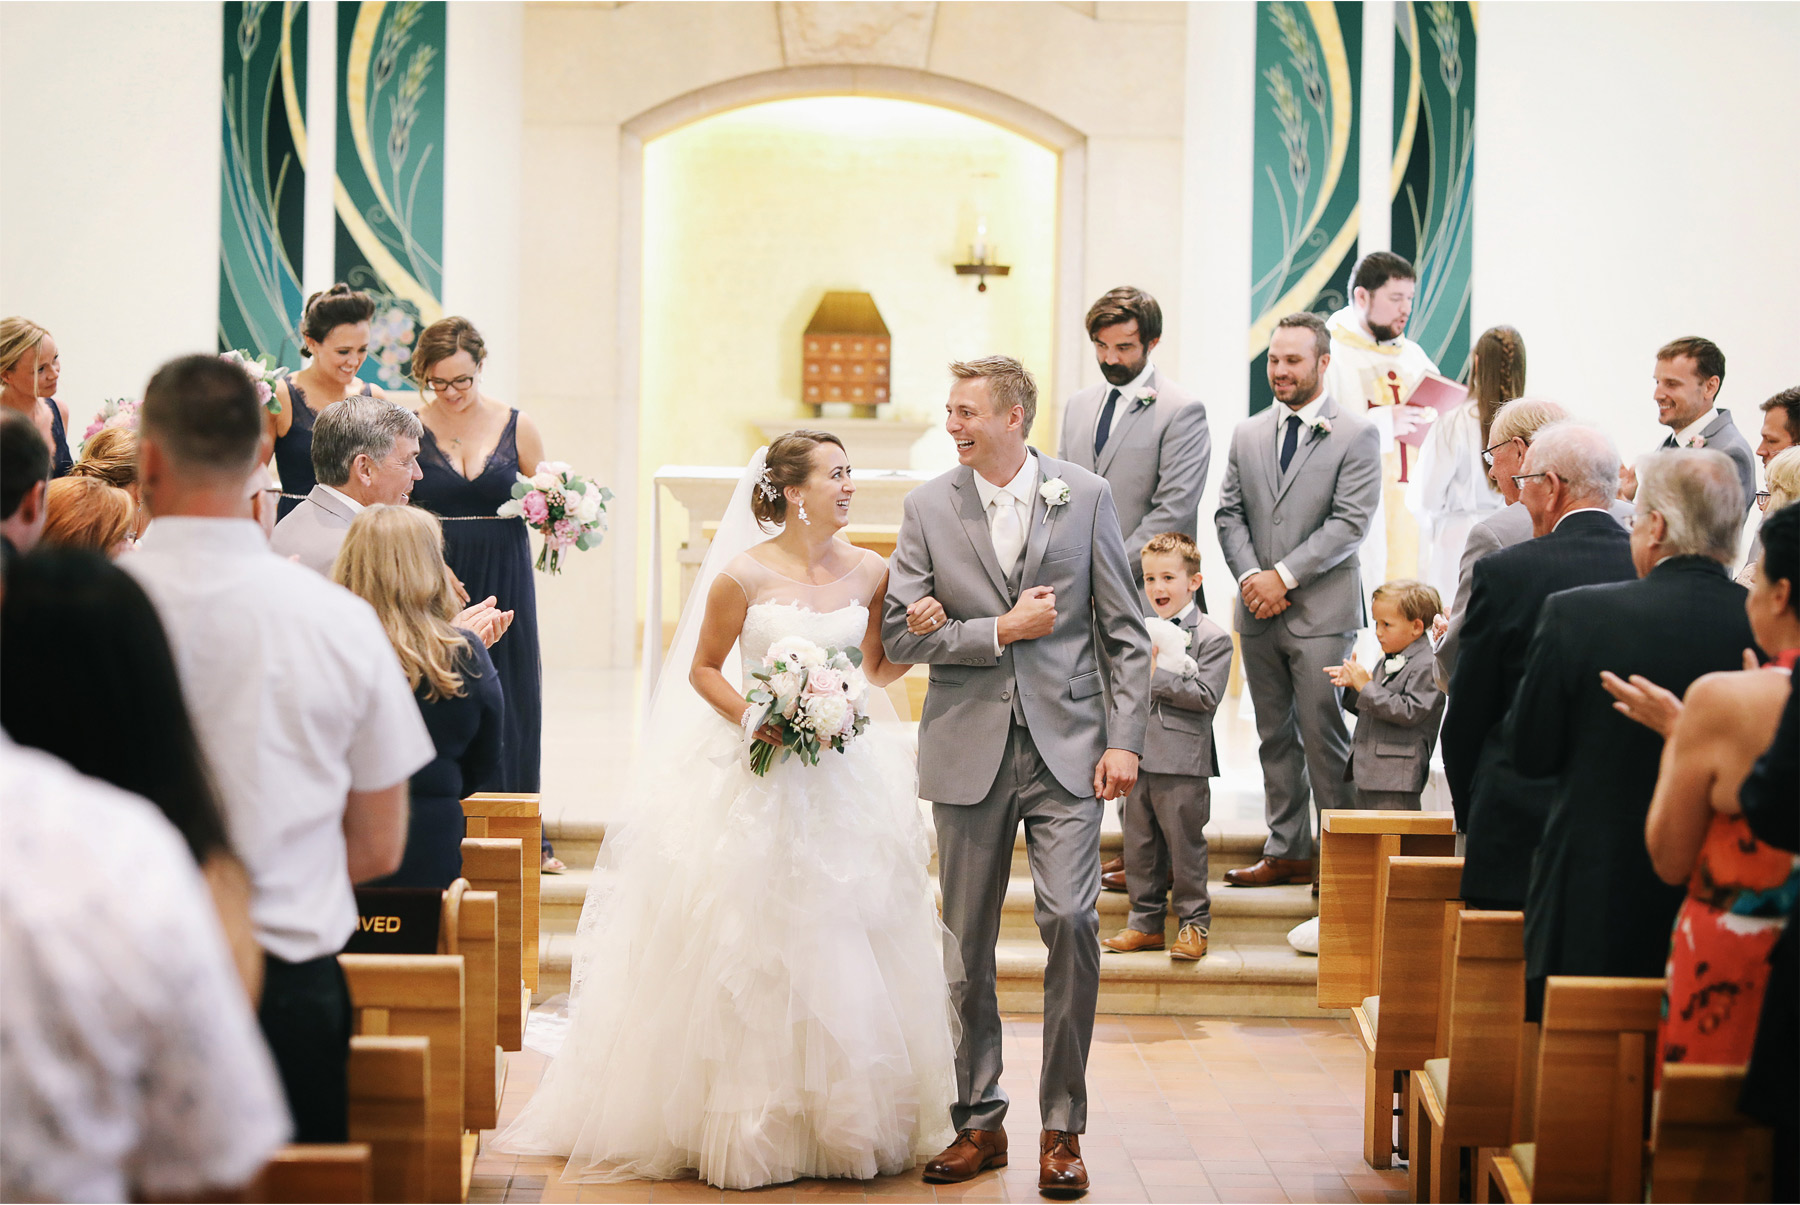 12-Minneapolis-Minnesota-Wedding-Photography-by-Vick-Photography-Our-Lady-of-Grace-Church-Ceremony-Brigid-and-Ernie.jpg